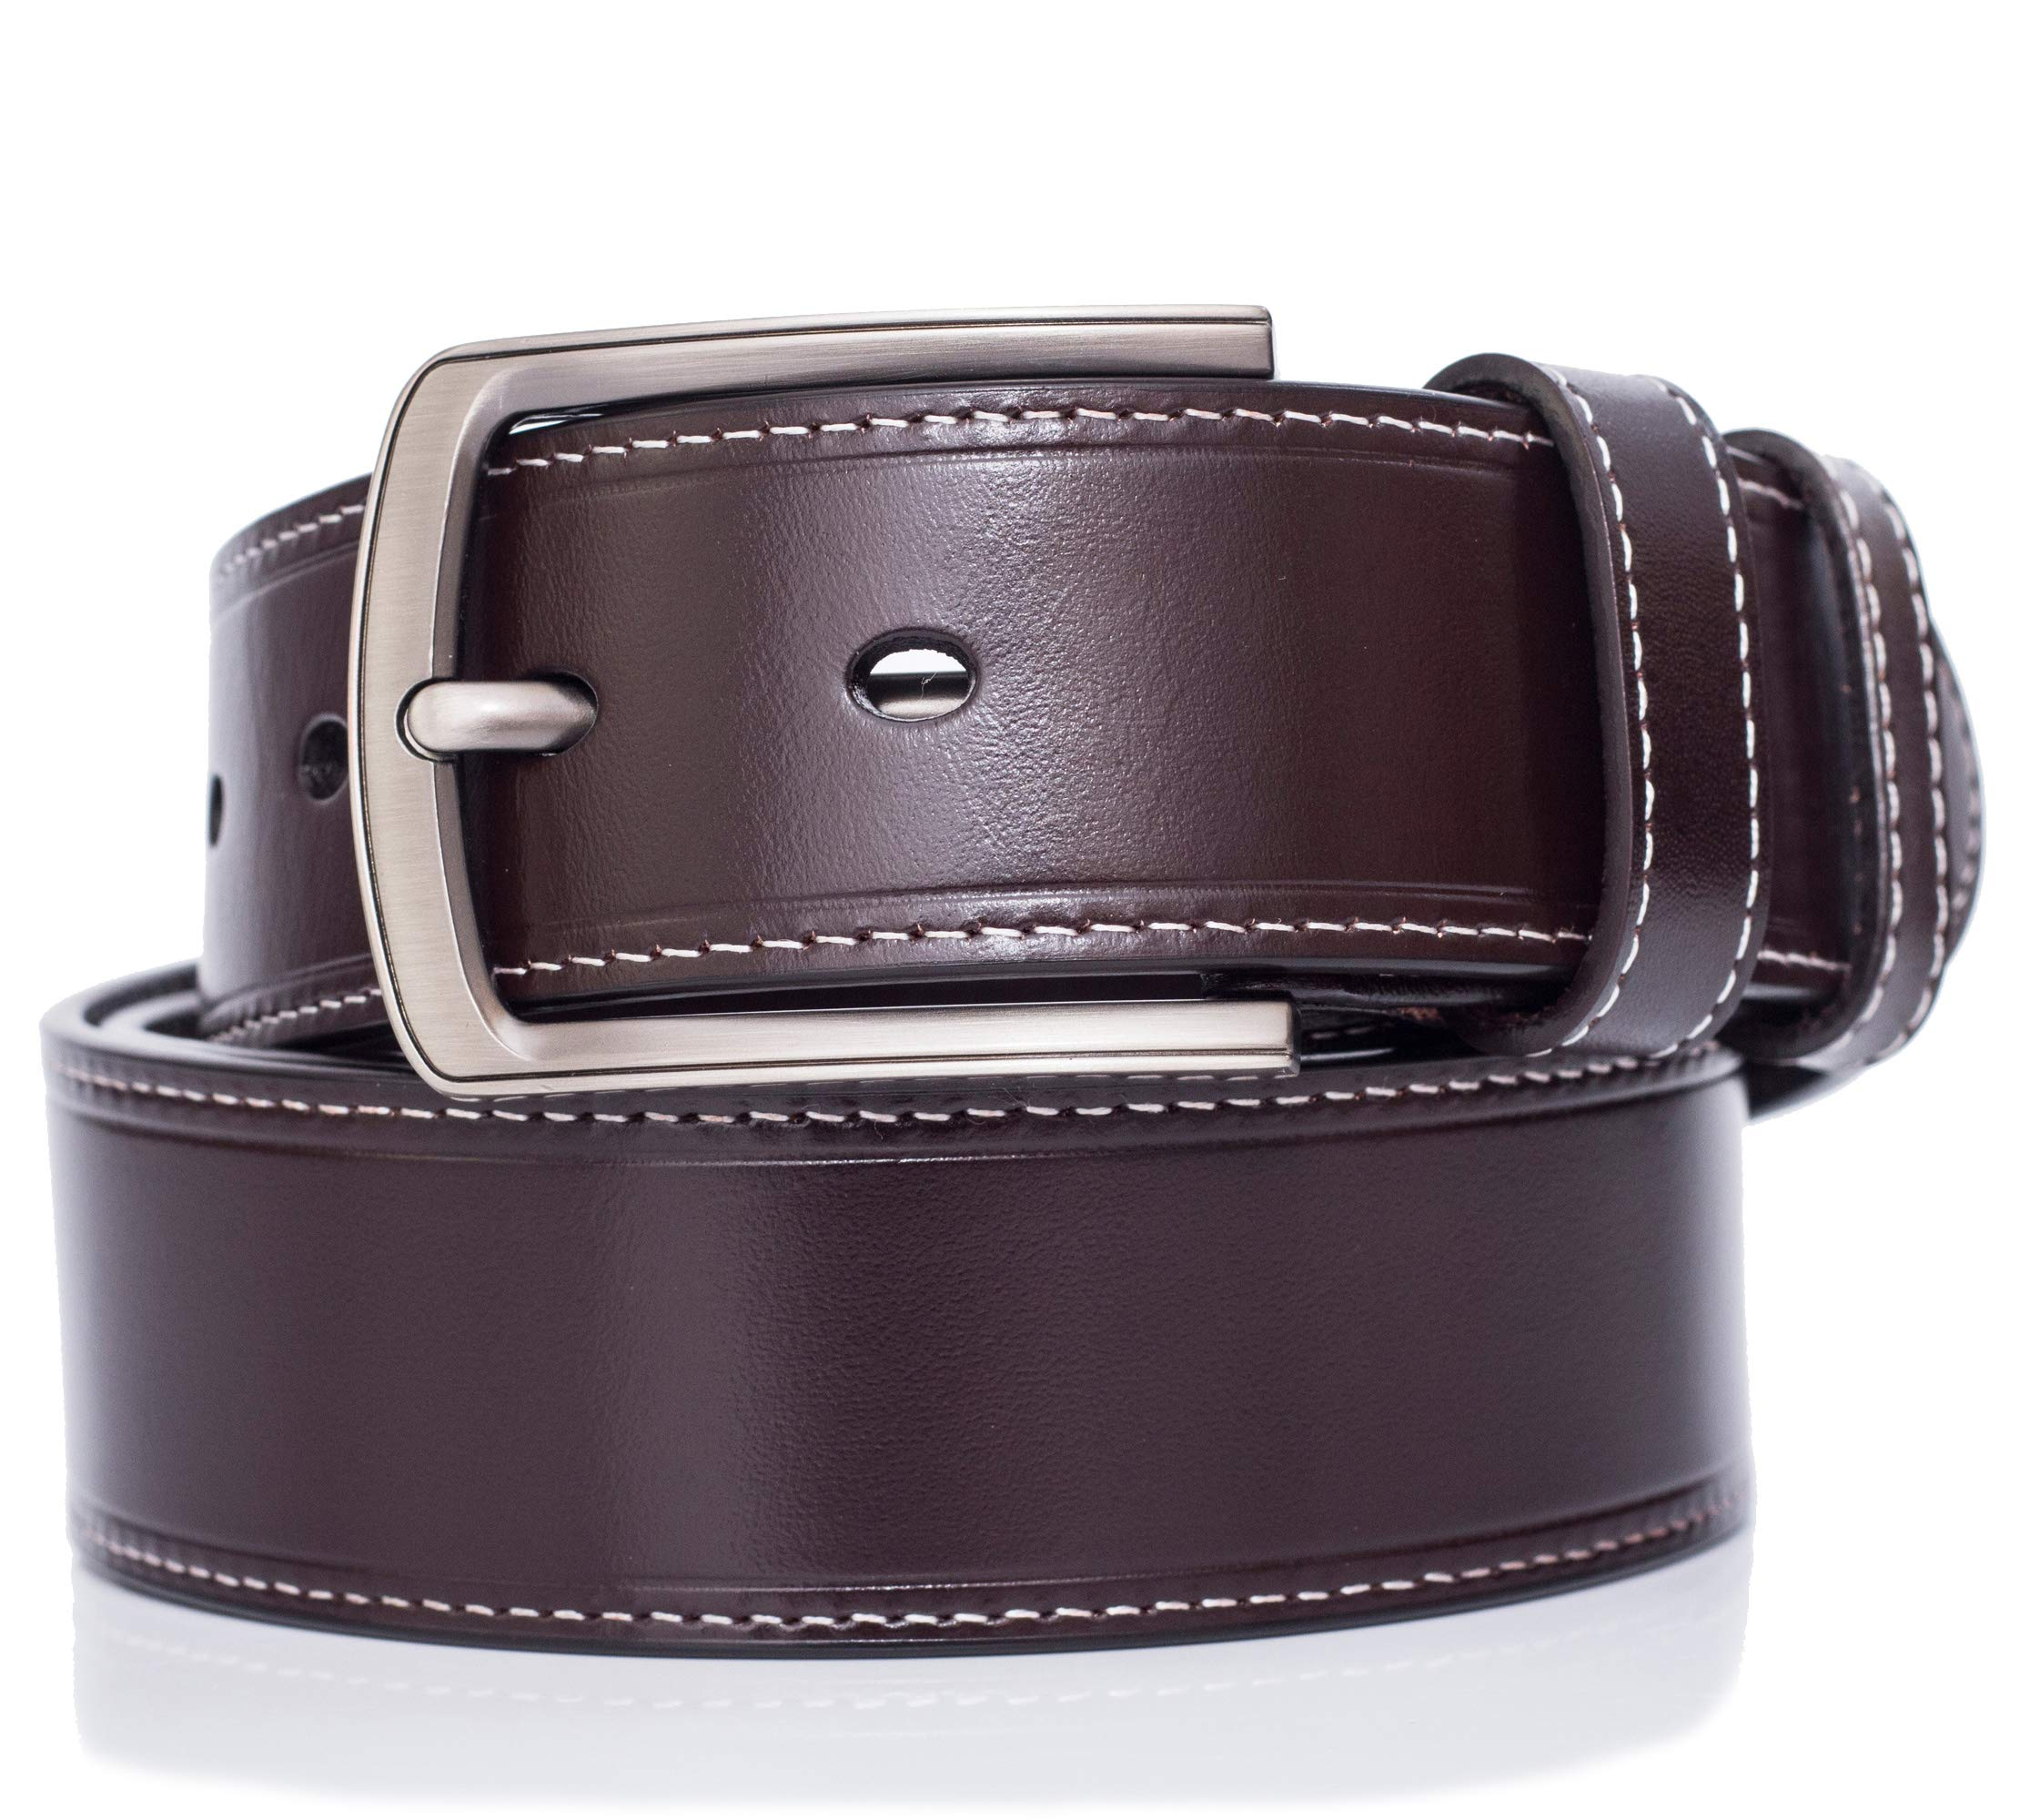 Full-grain Leather Belt For Men Top Quality, pin buckle, for 34''-36''/3BROWN XS